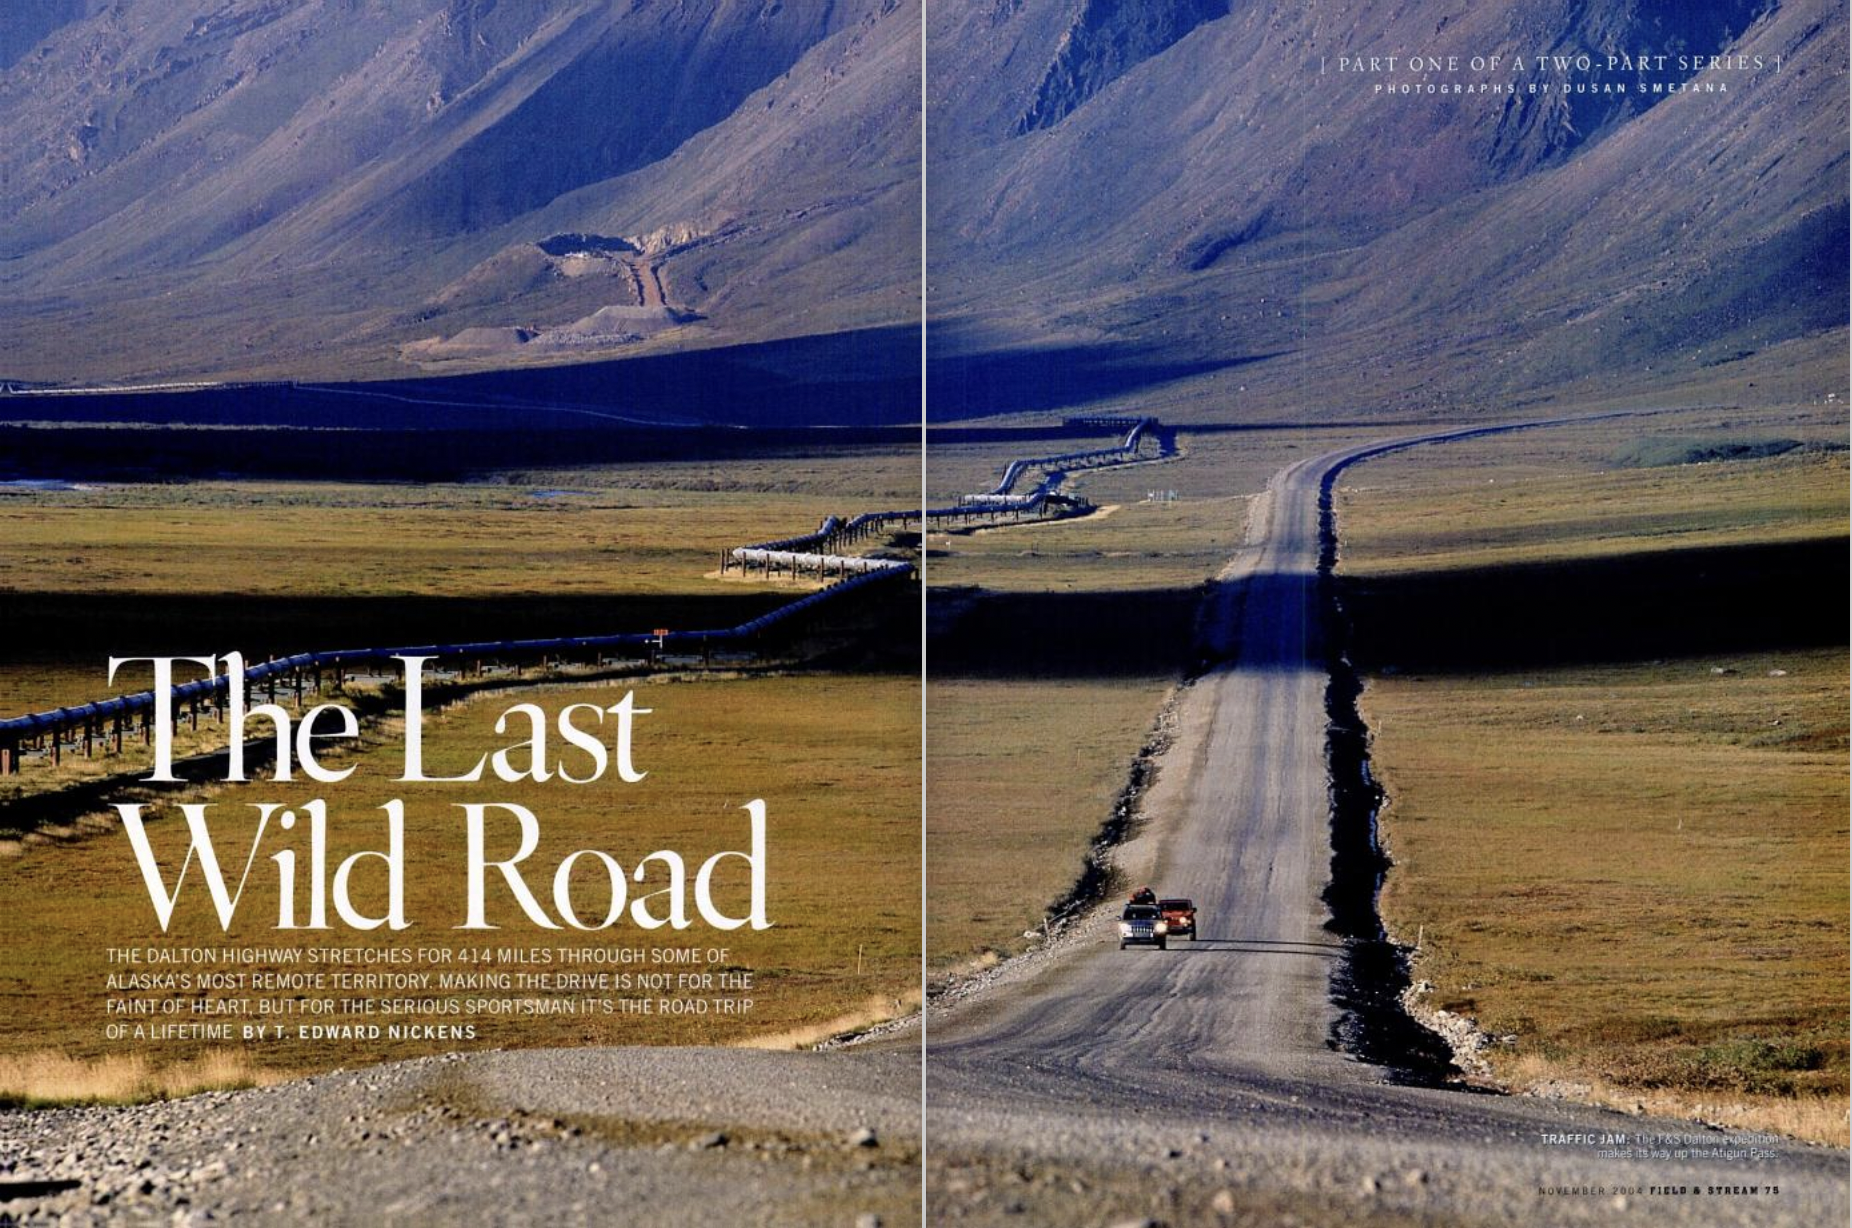 The Dalton Highway in Alaska is a mecca for big game adventurers